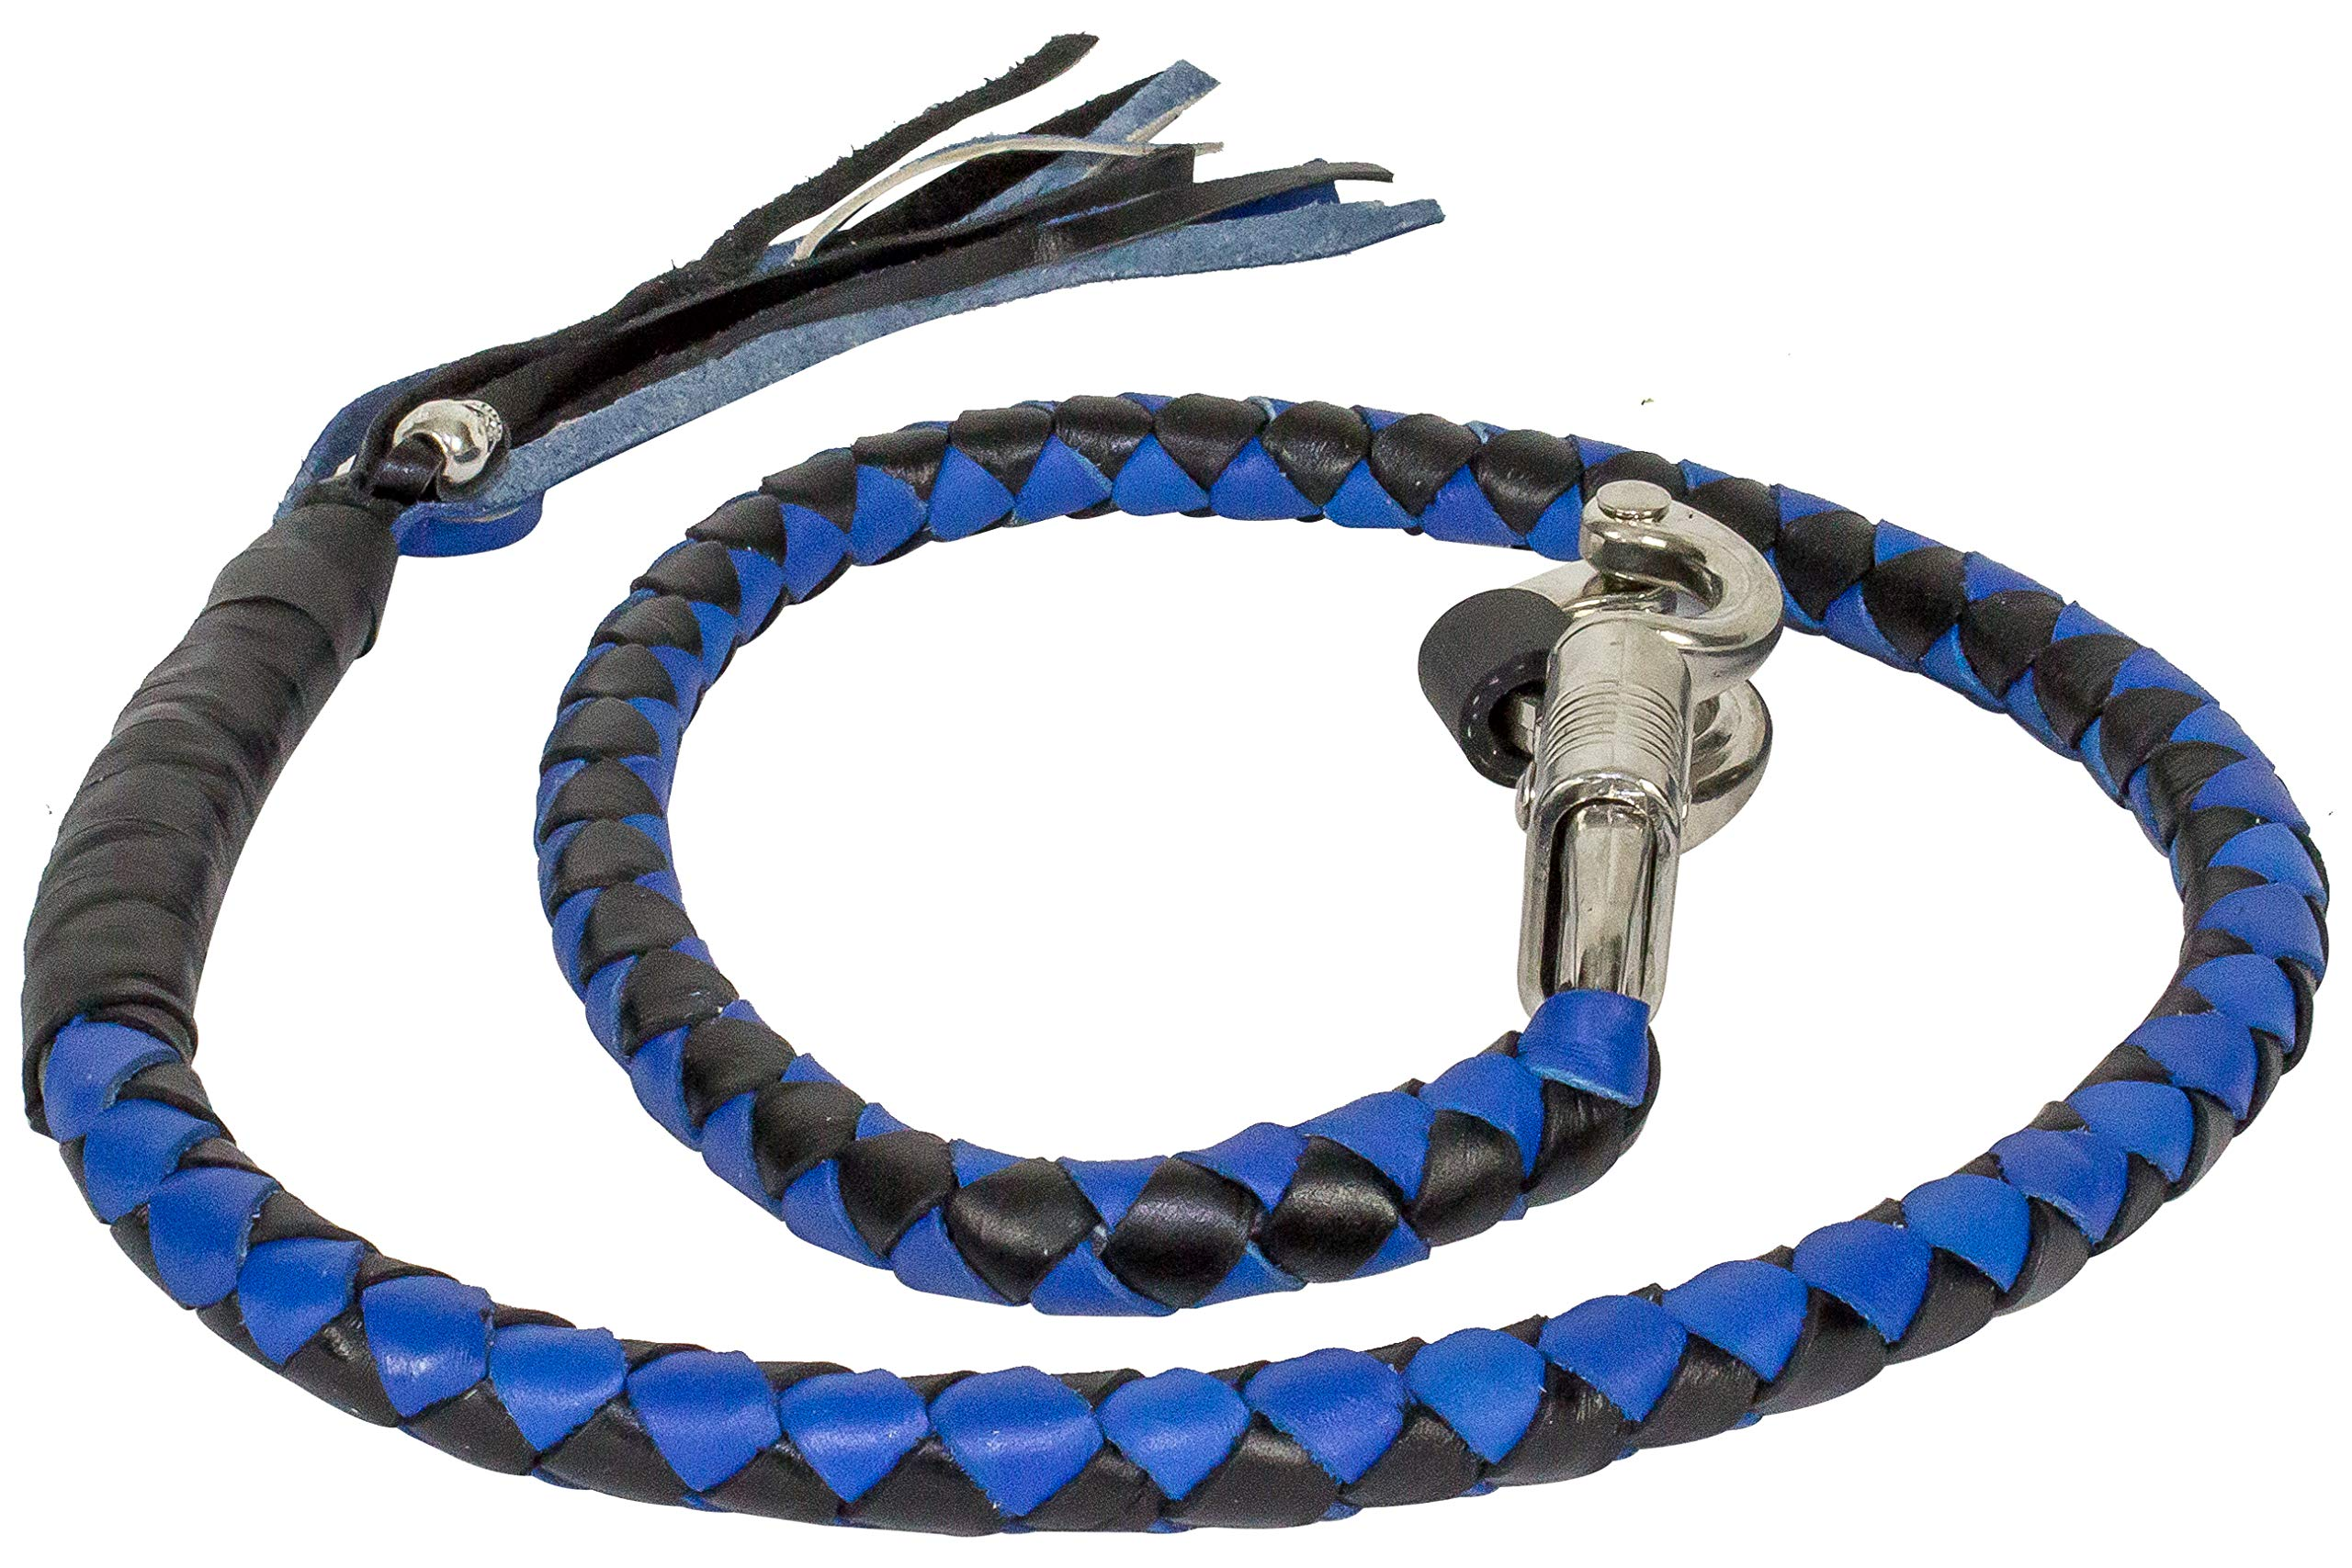 Biker Whip Get Back 36'' Motorcycle Whip Get Back Whip Rope Gift (GBW2-11S)